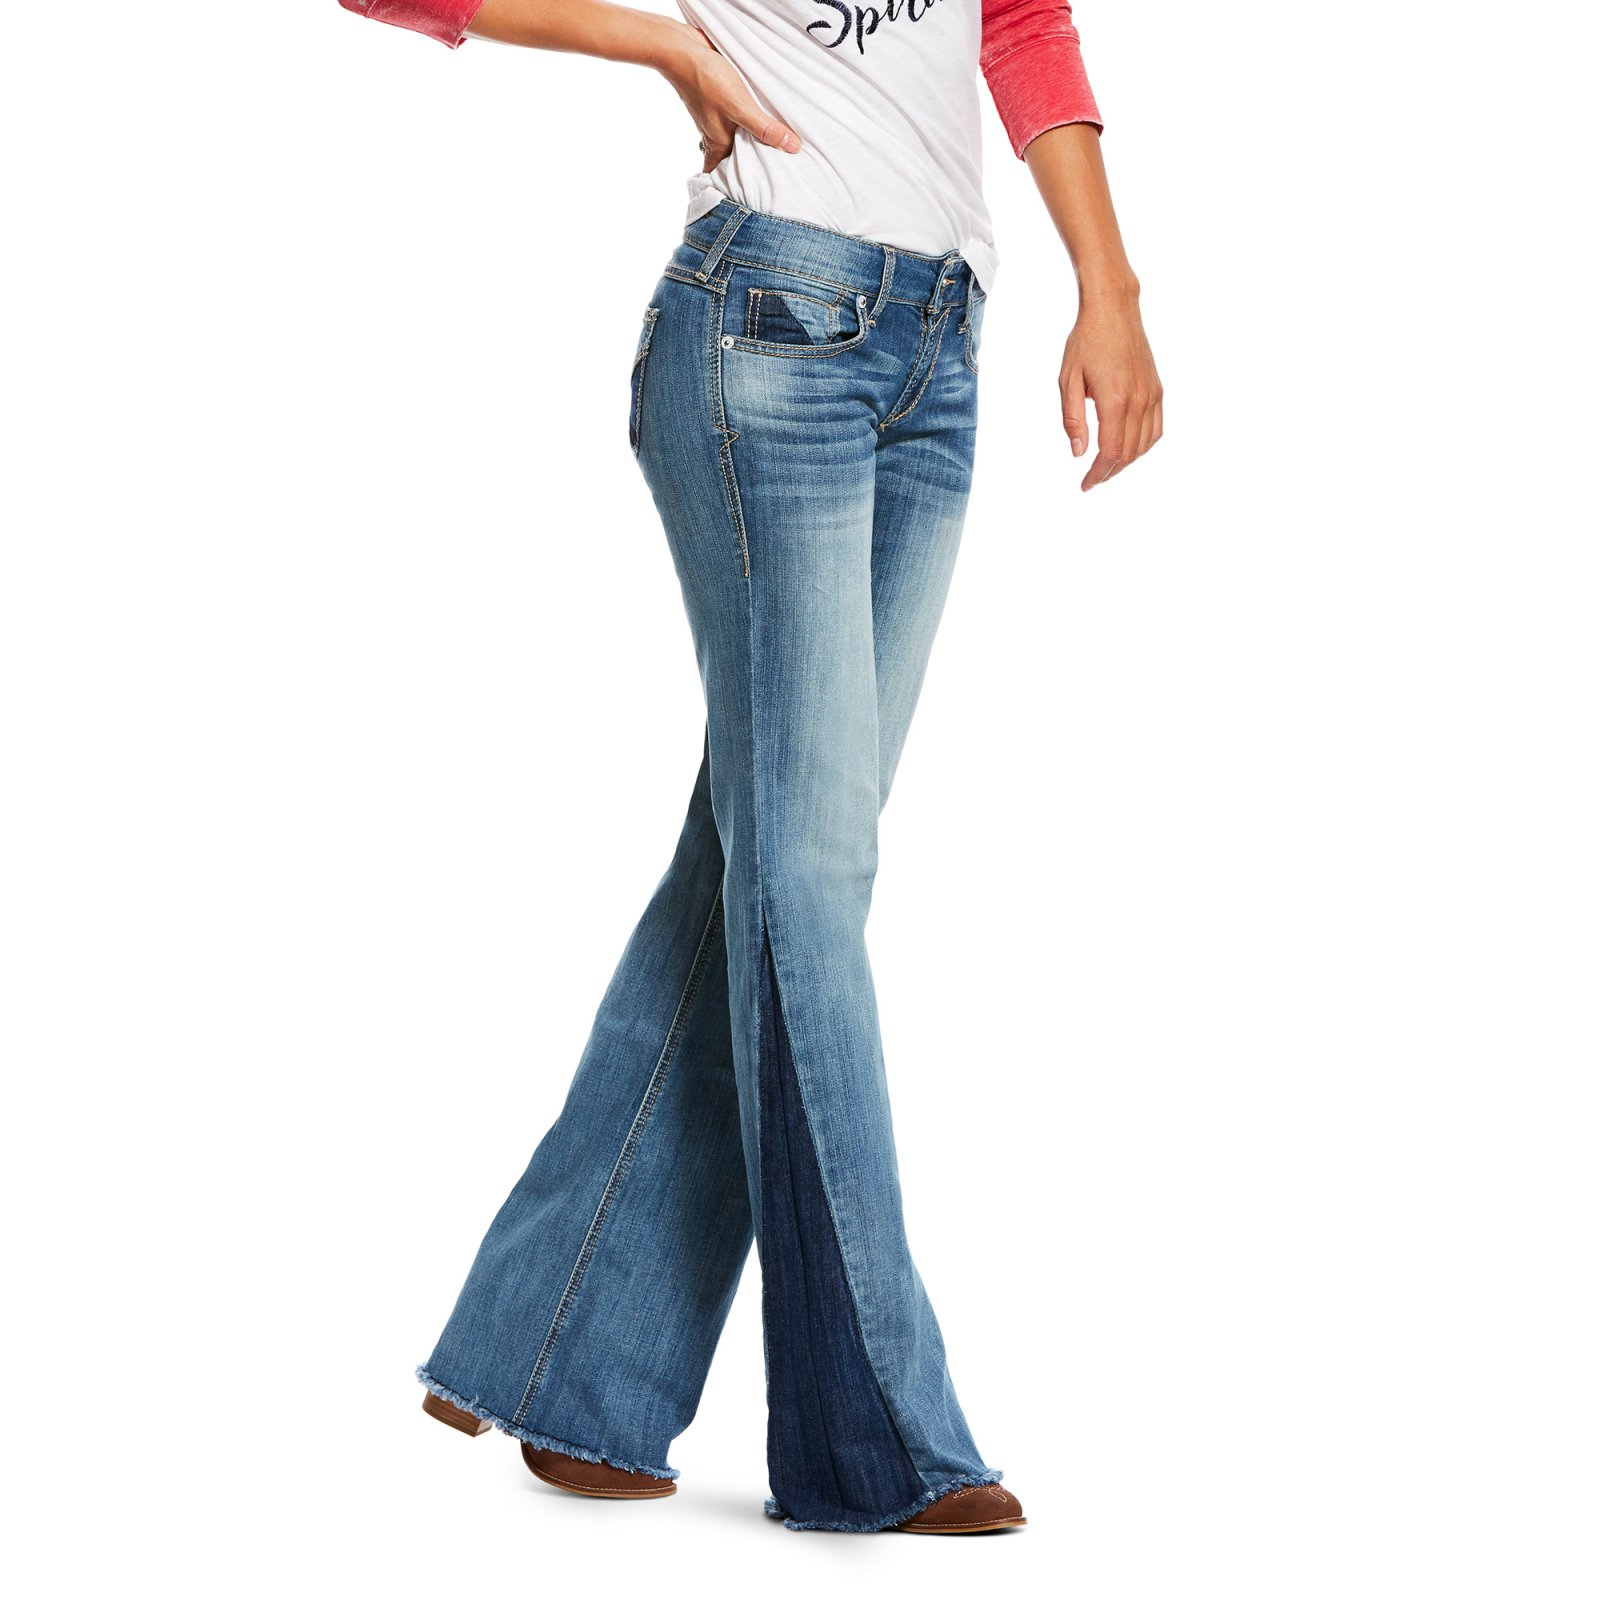 Grace Trouser from Ariat